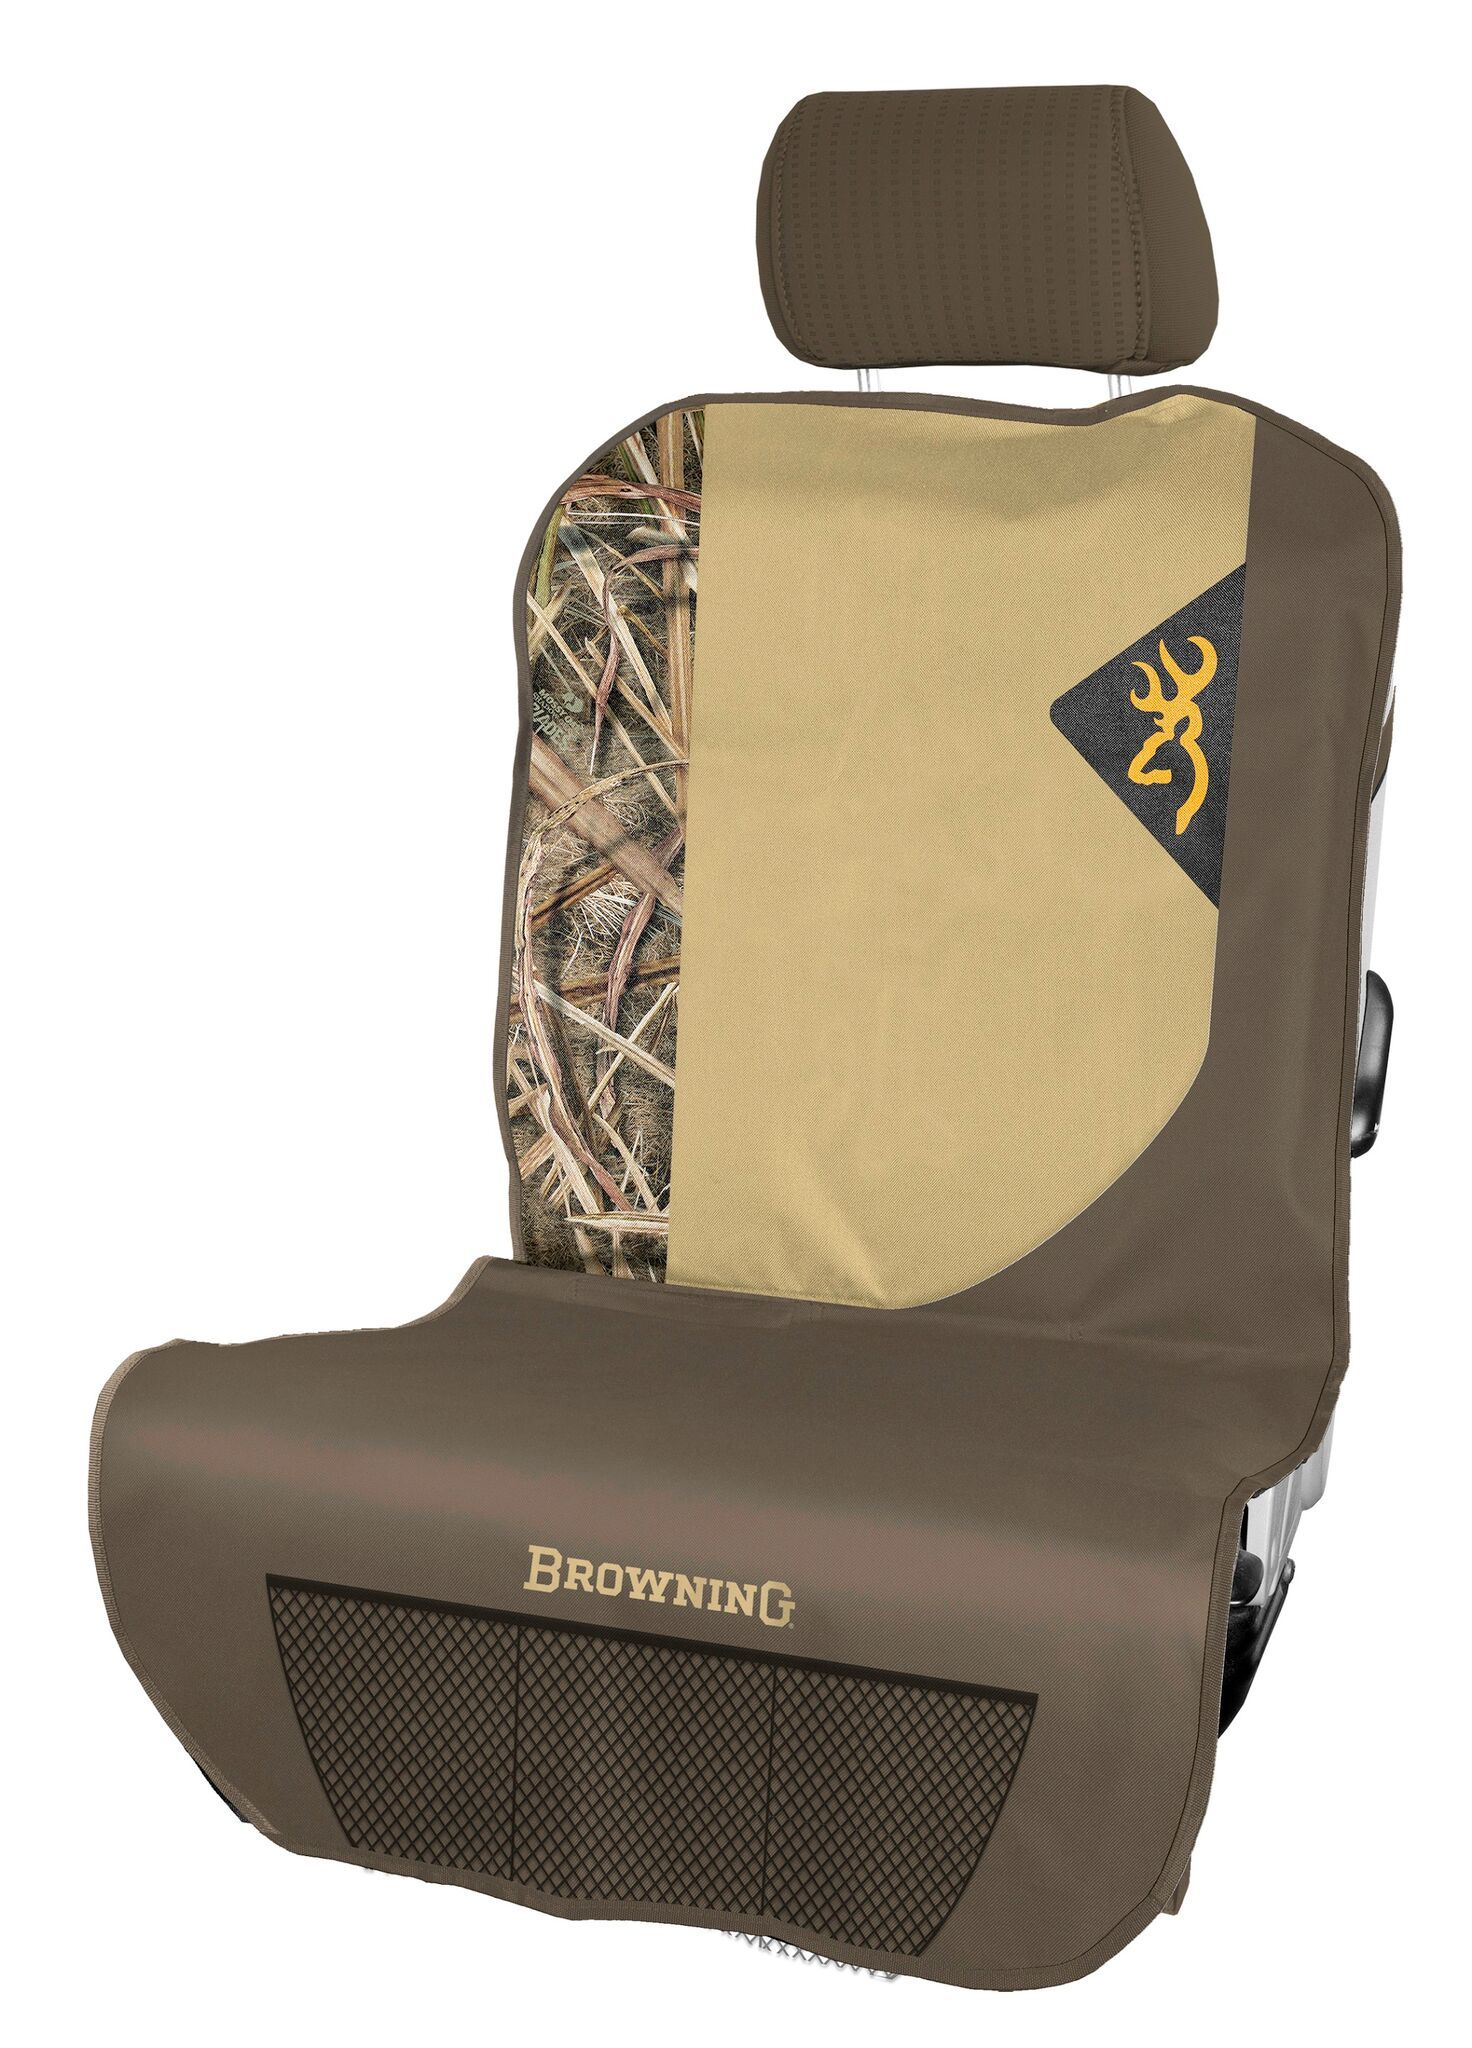 Browning Pet Passenger Seat Cover